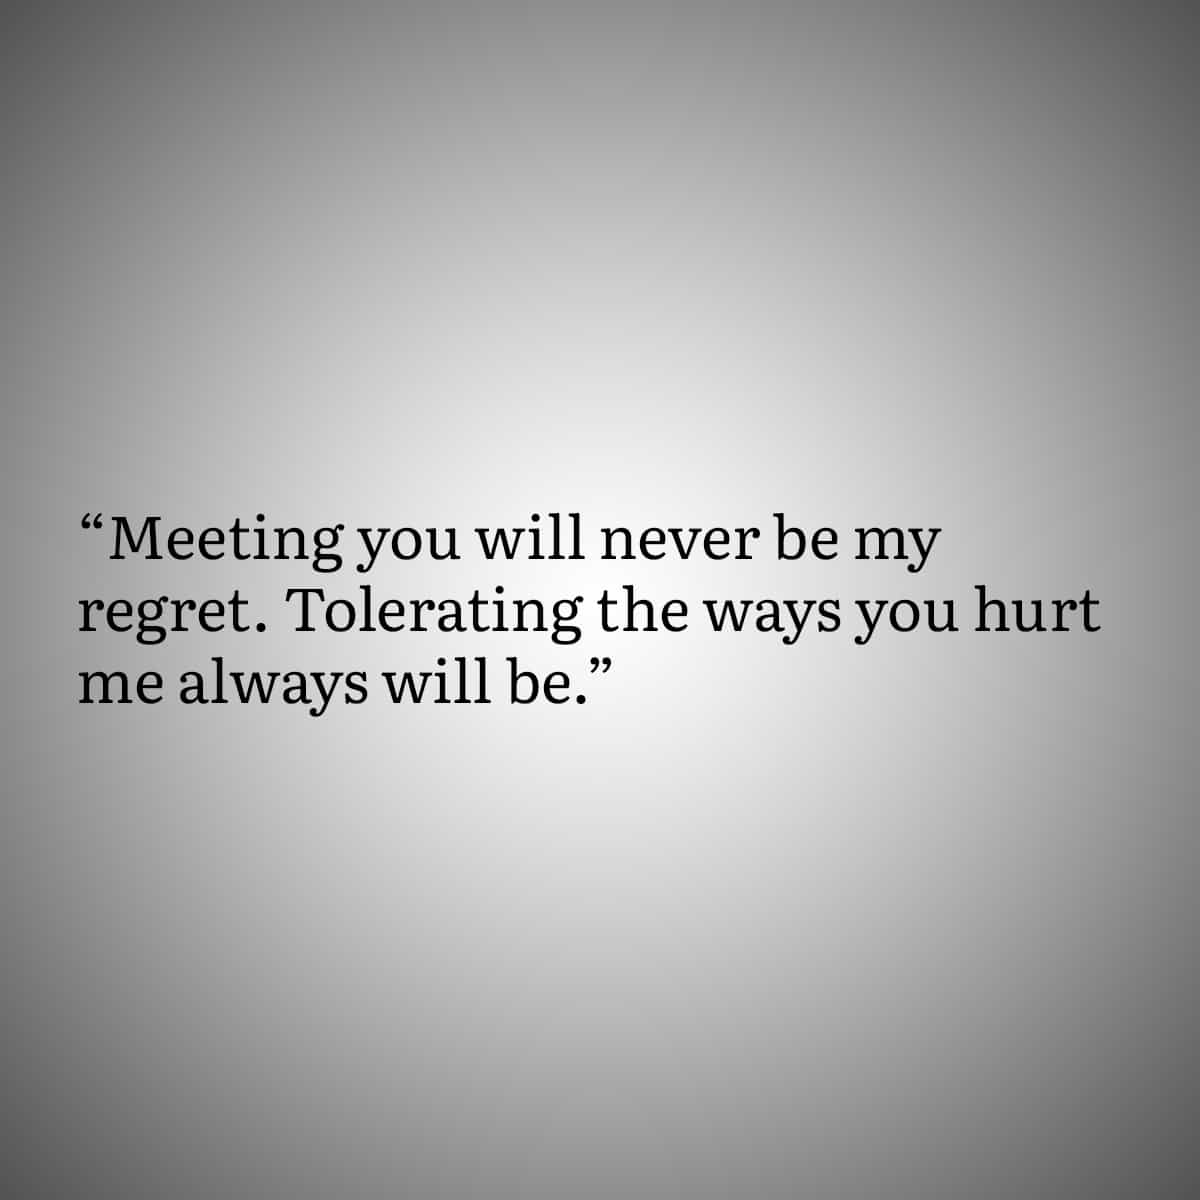 Heart Quote 5: Meeting you will never be my regret. Tolerating the way you hurt me always will be.